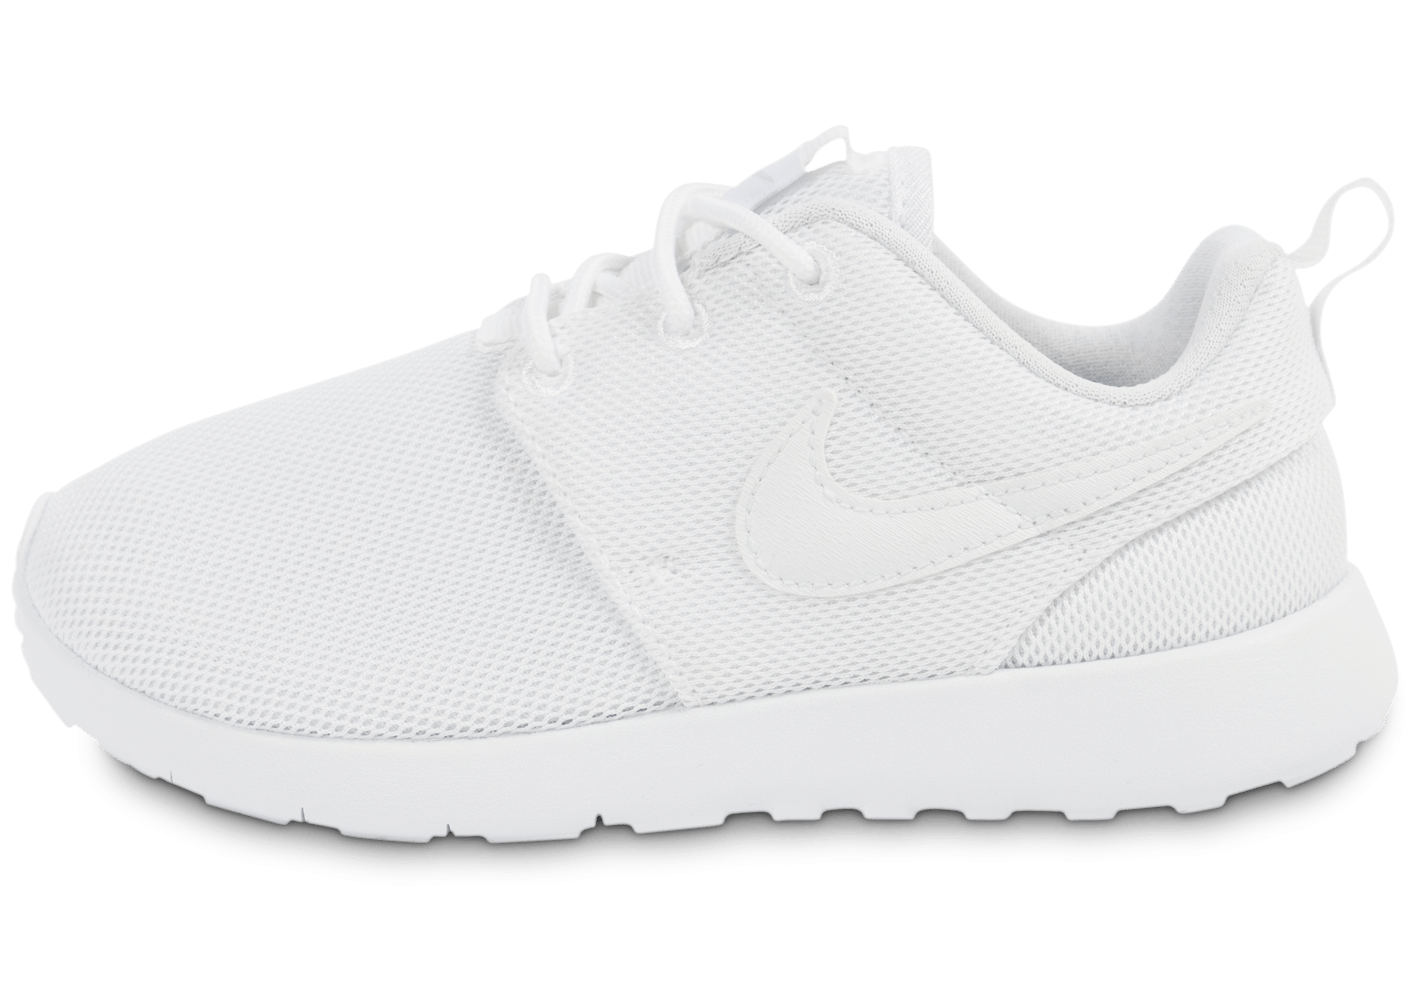 promo code 6d348 6488d ... chaussures nike roshe one enfant blanche vue exterieure